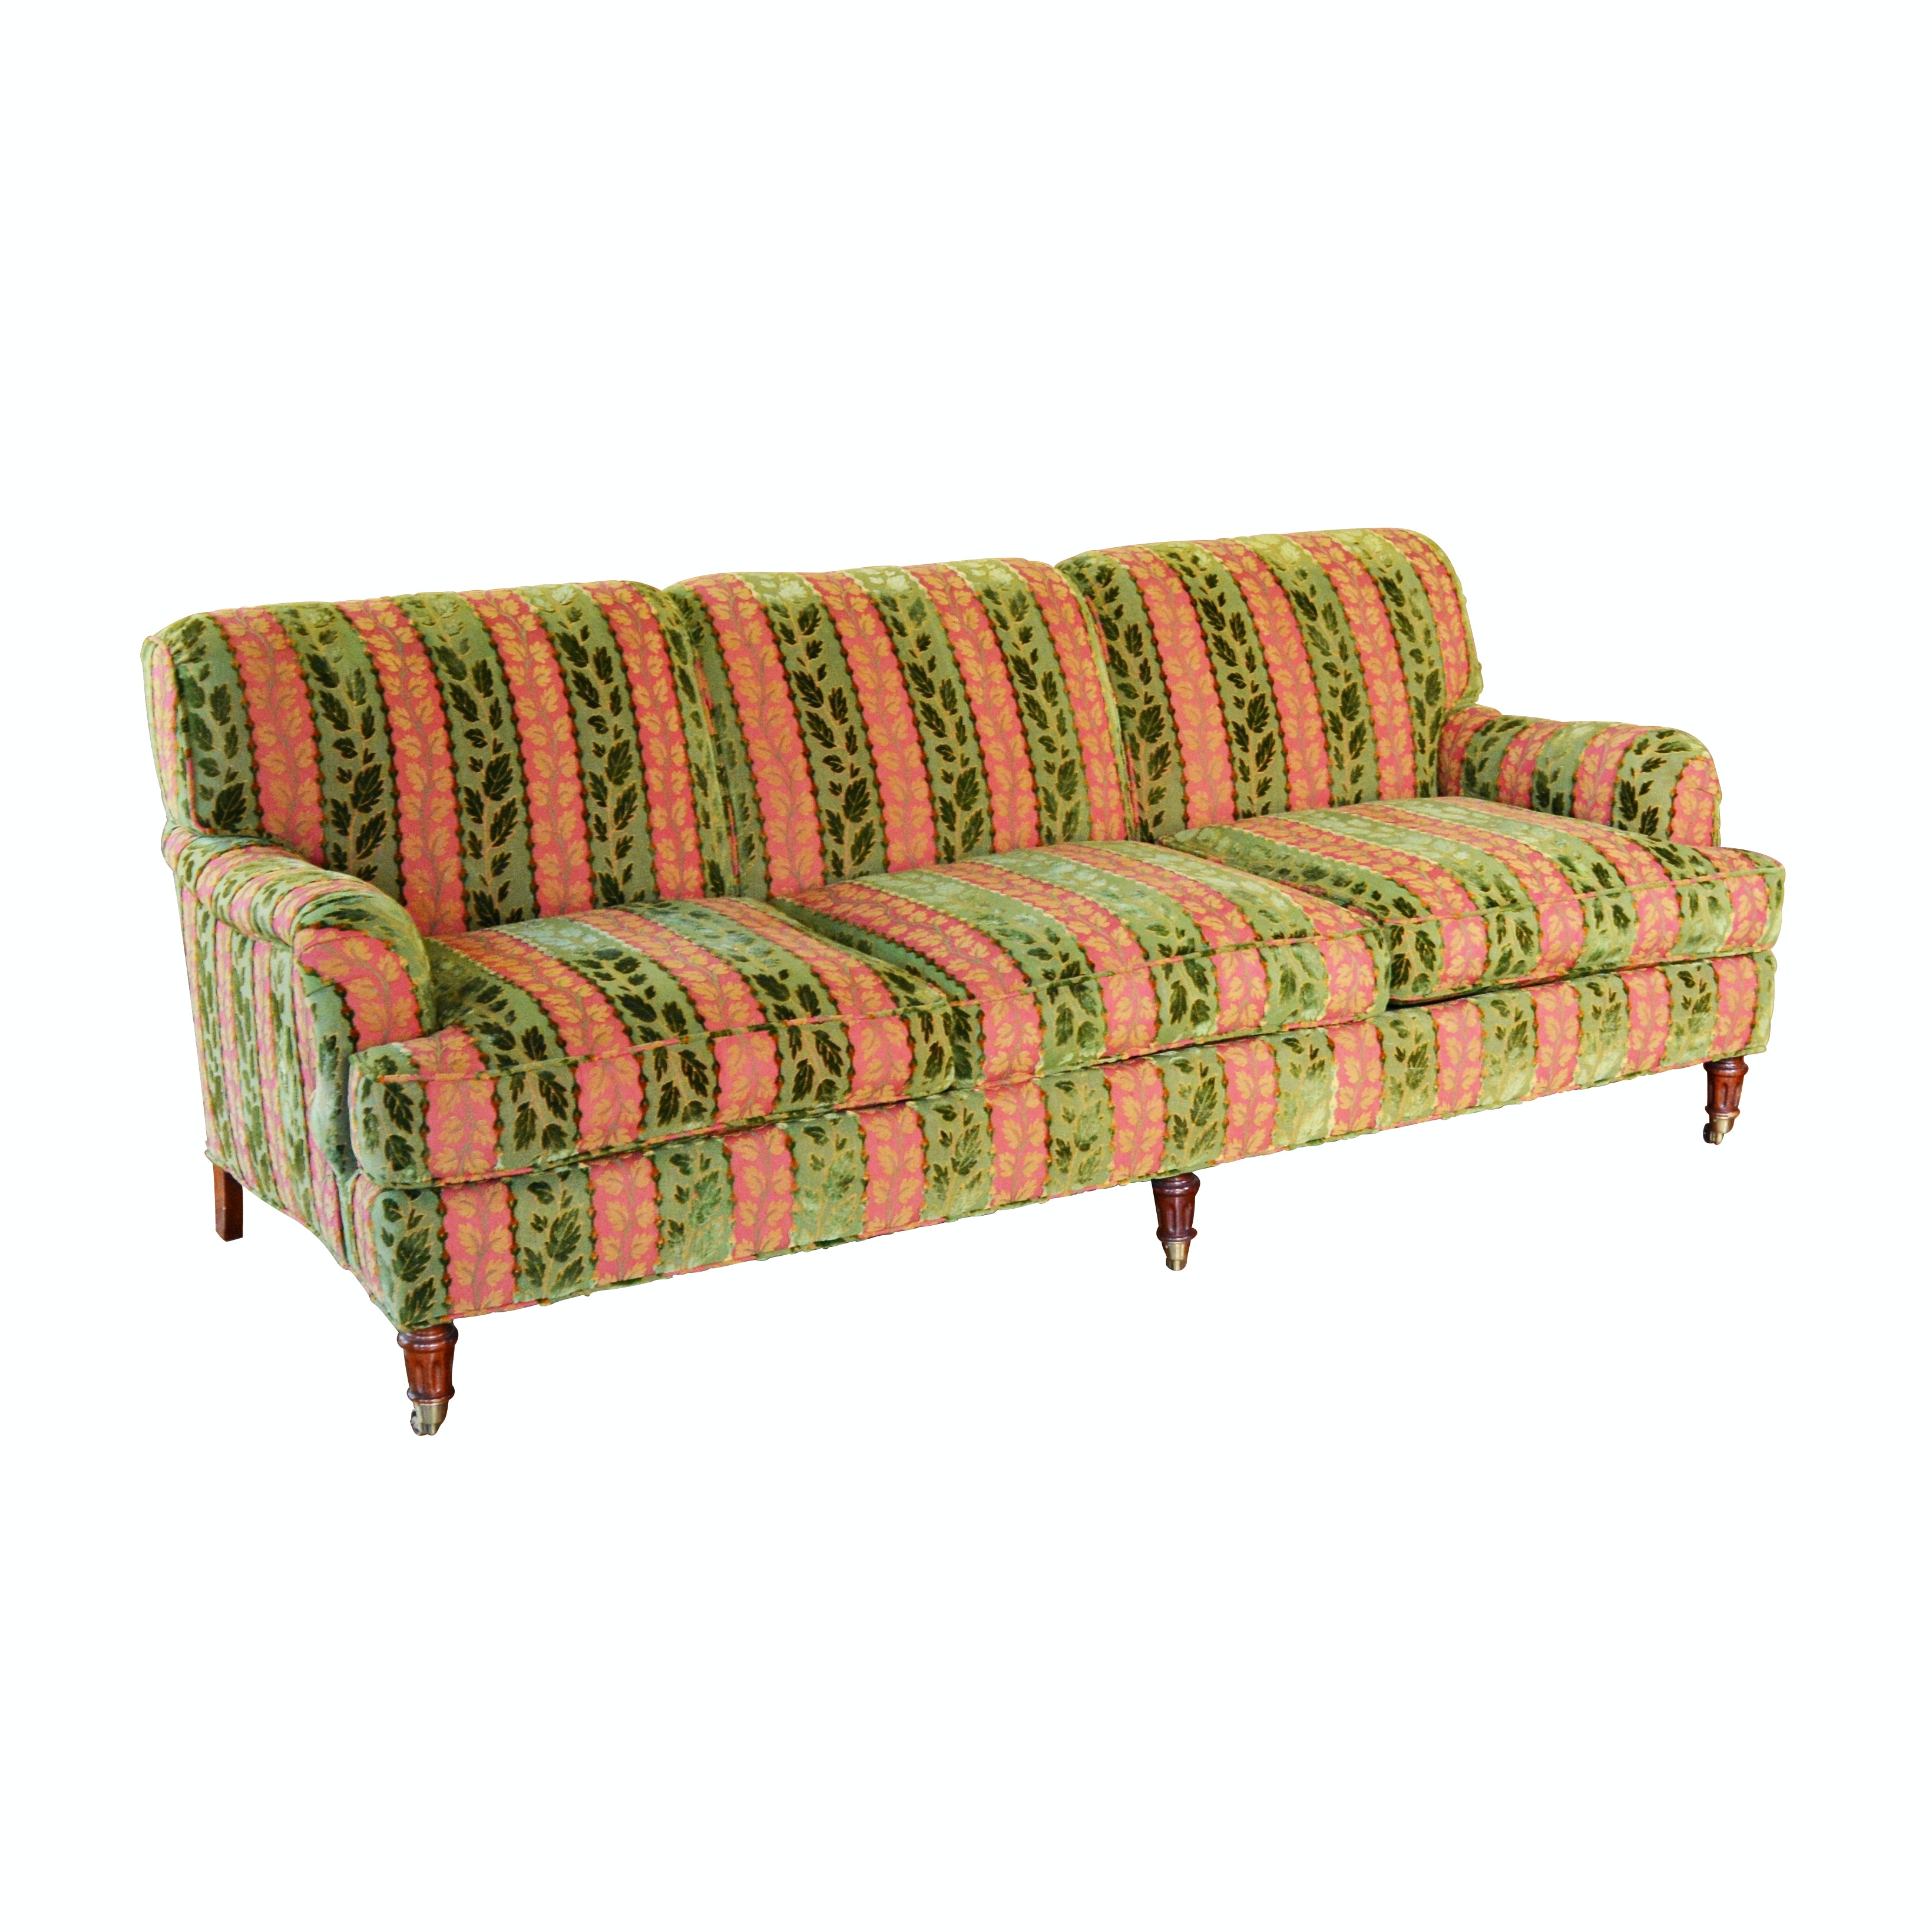 Striped Burnout Velvet Upholstered Sofa, Late 20th Century